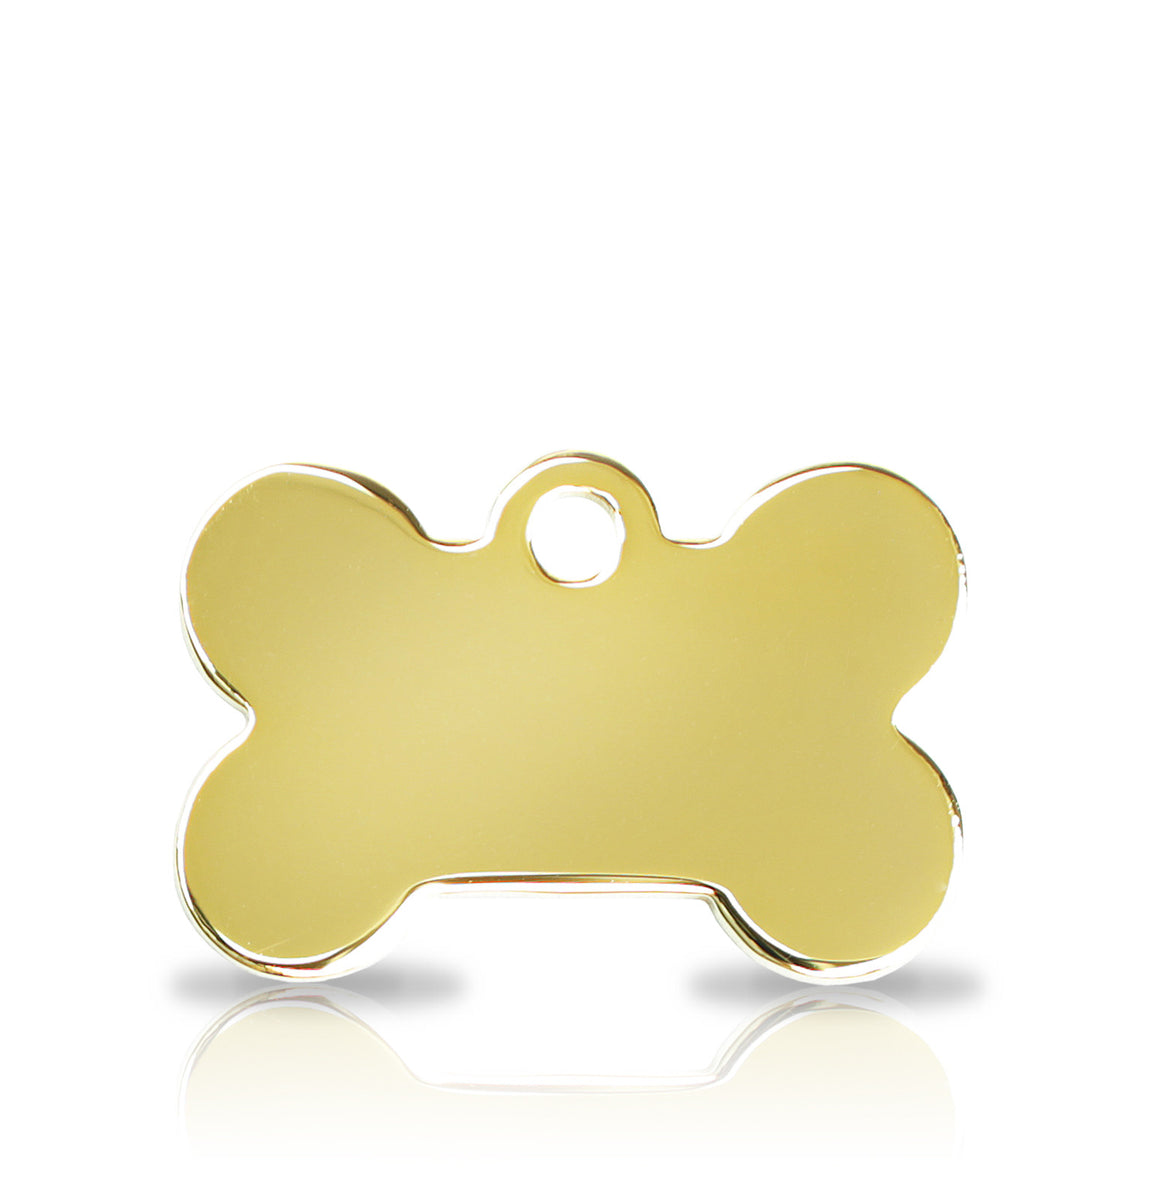 TaggIT Prestige Small Bone Gold iMarc Pet Tag